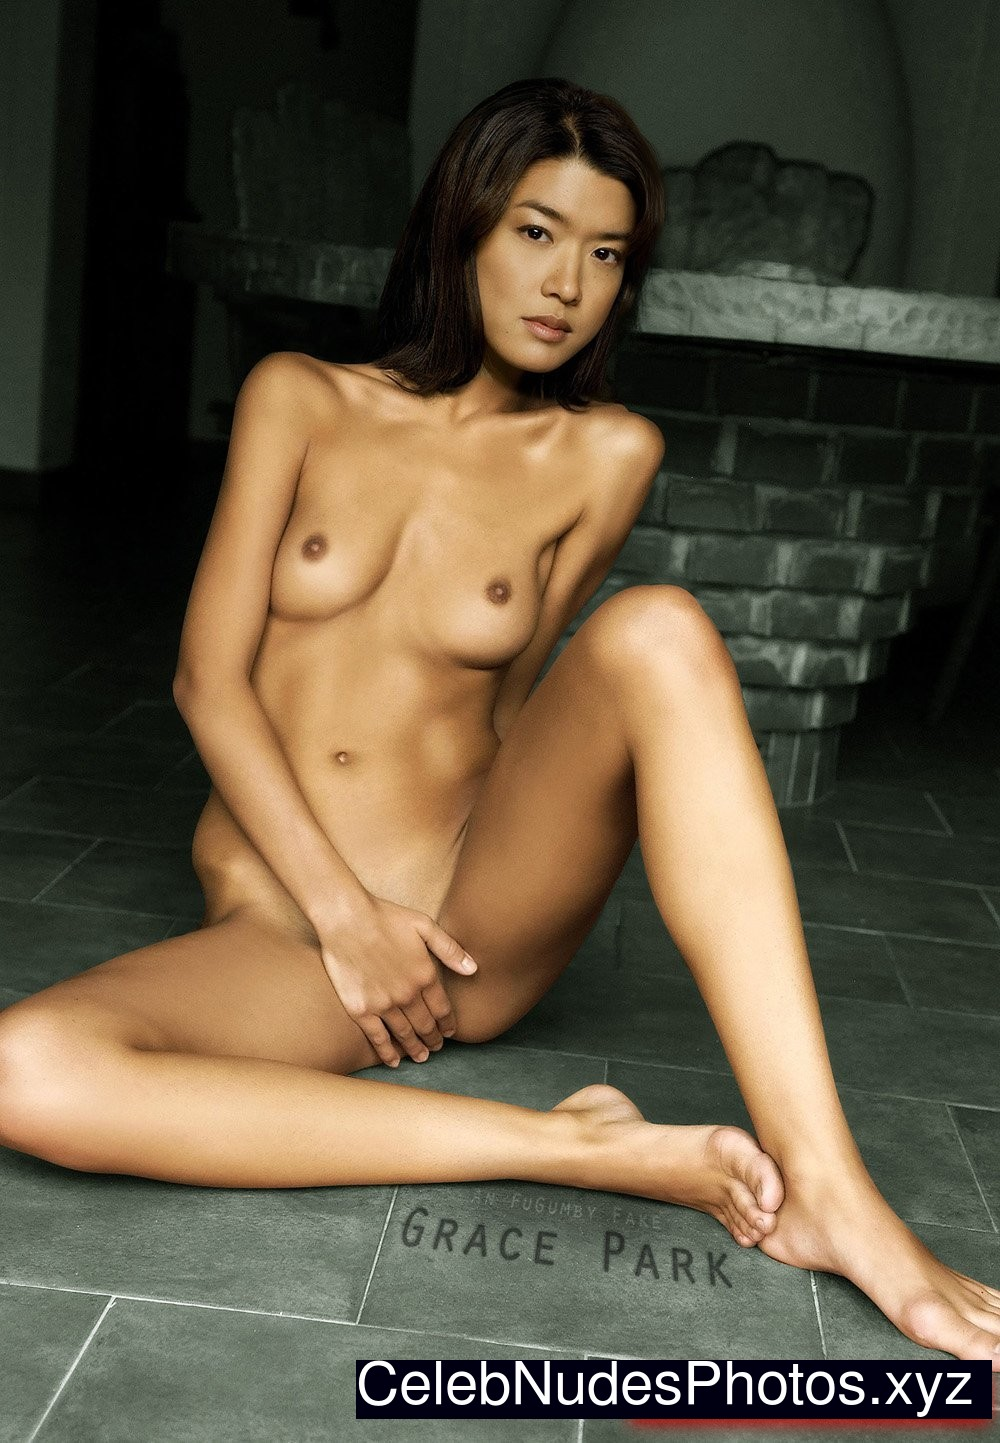 Yes grace park nude are